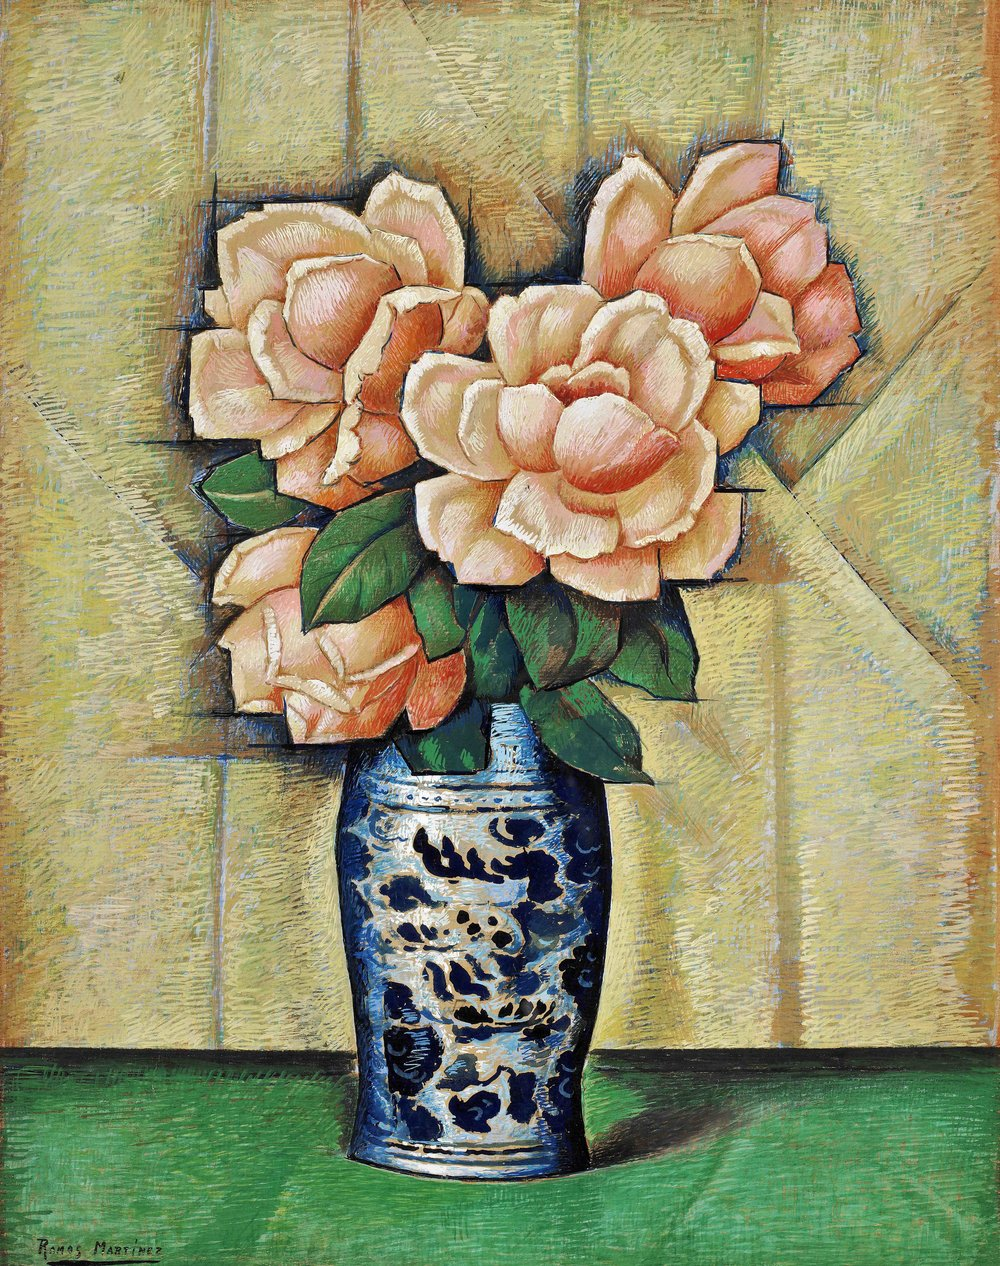 Rosas en Jarrón Azul / Roses in a Blue Vase  ca. 1940 tempera on paper mounted on board / temple sobre papel sobre tabla 24 x 19 inches; 61 x 48.3 centímetros Private collection